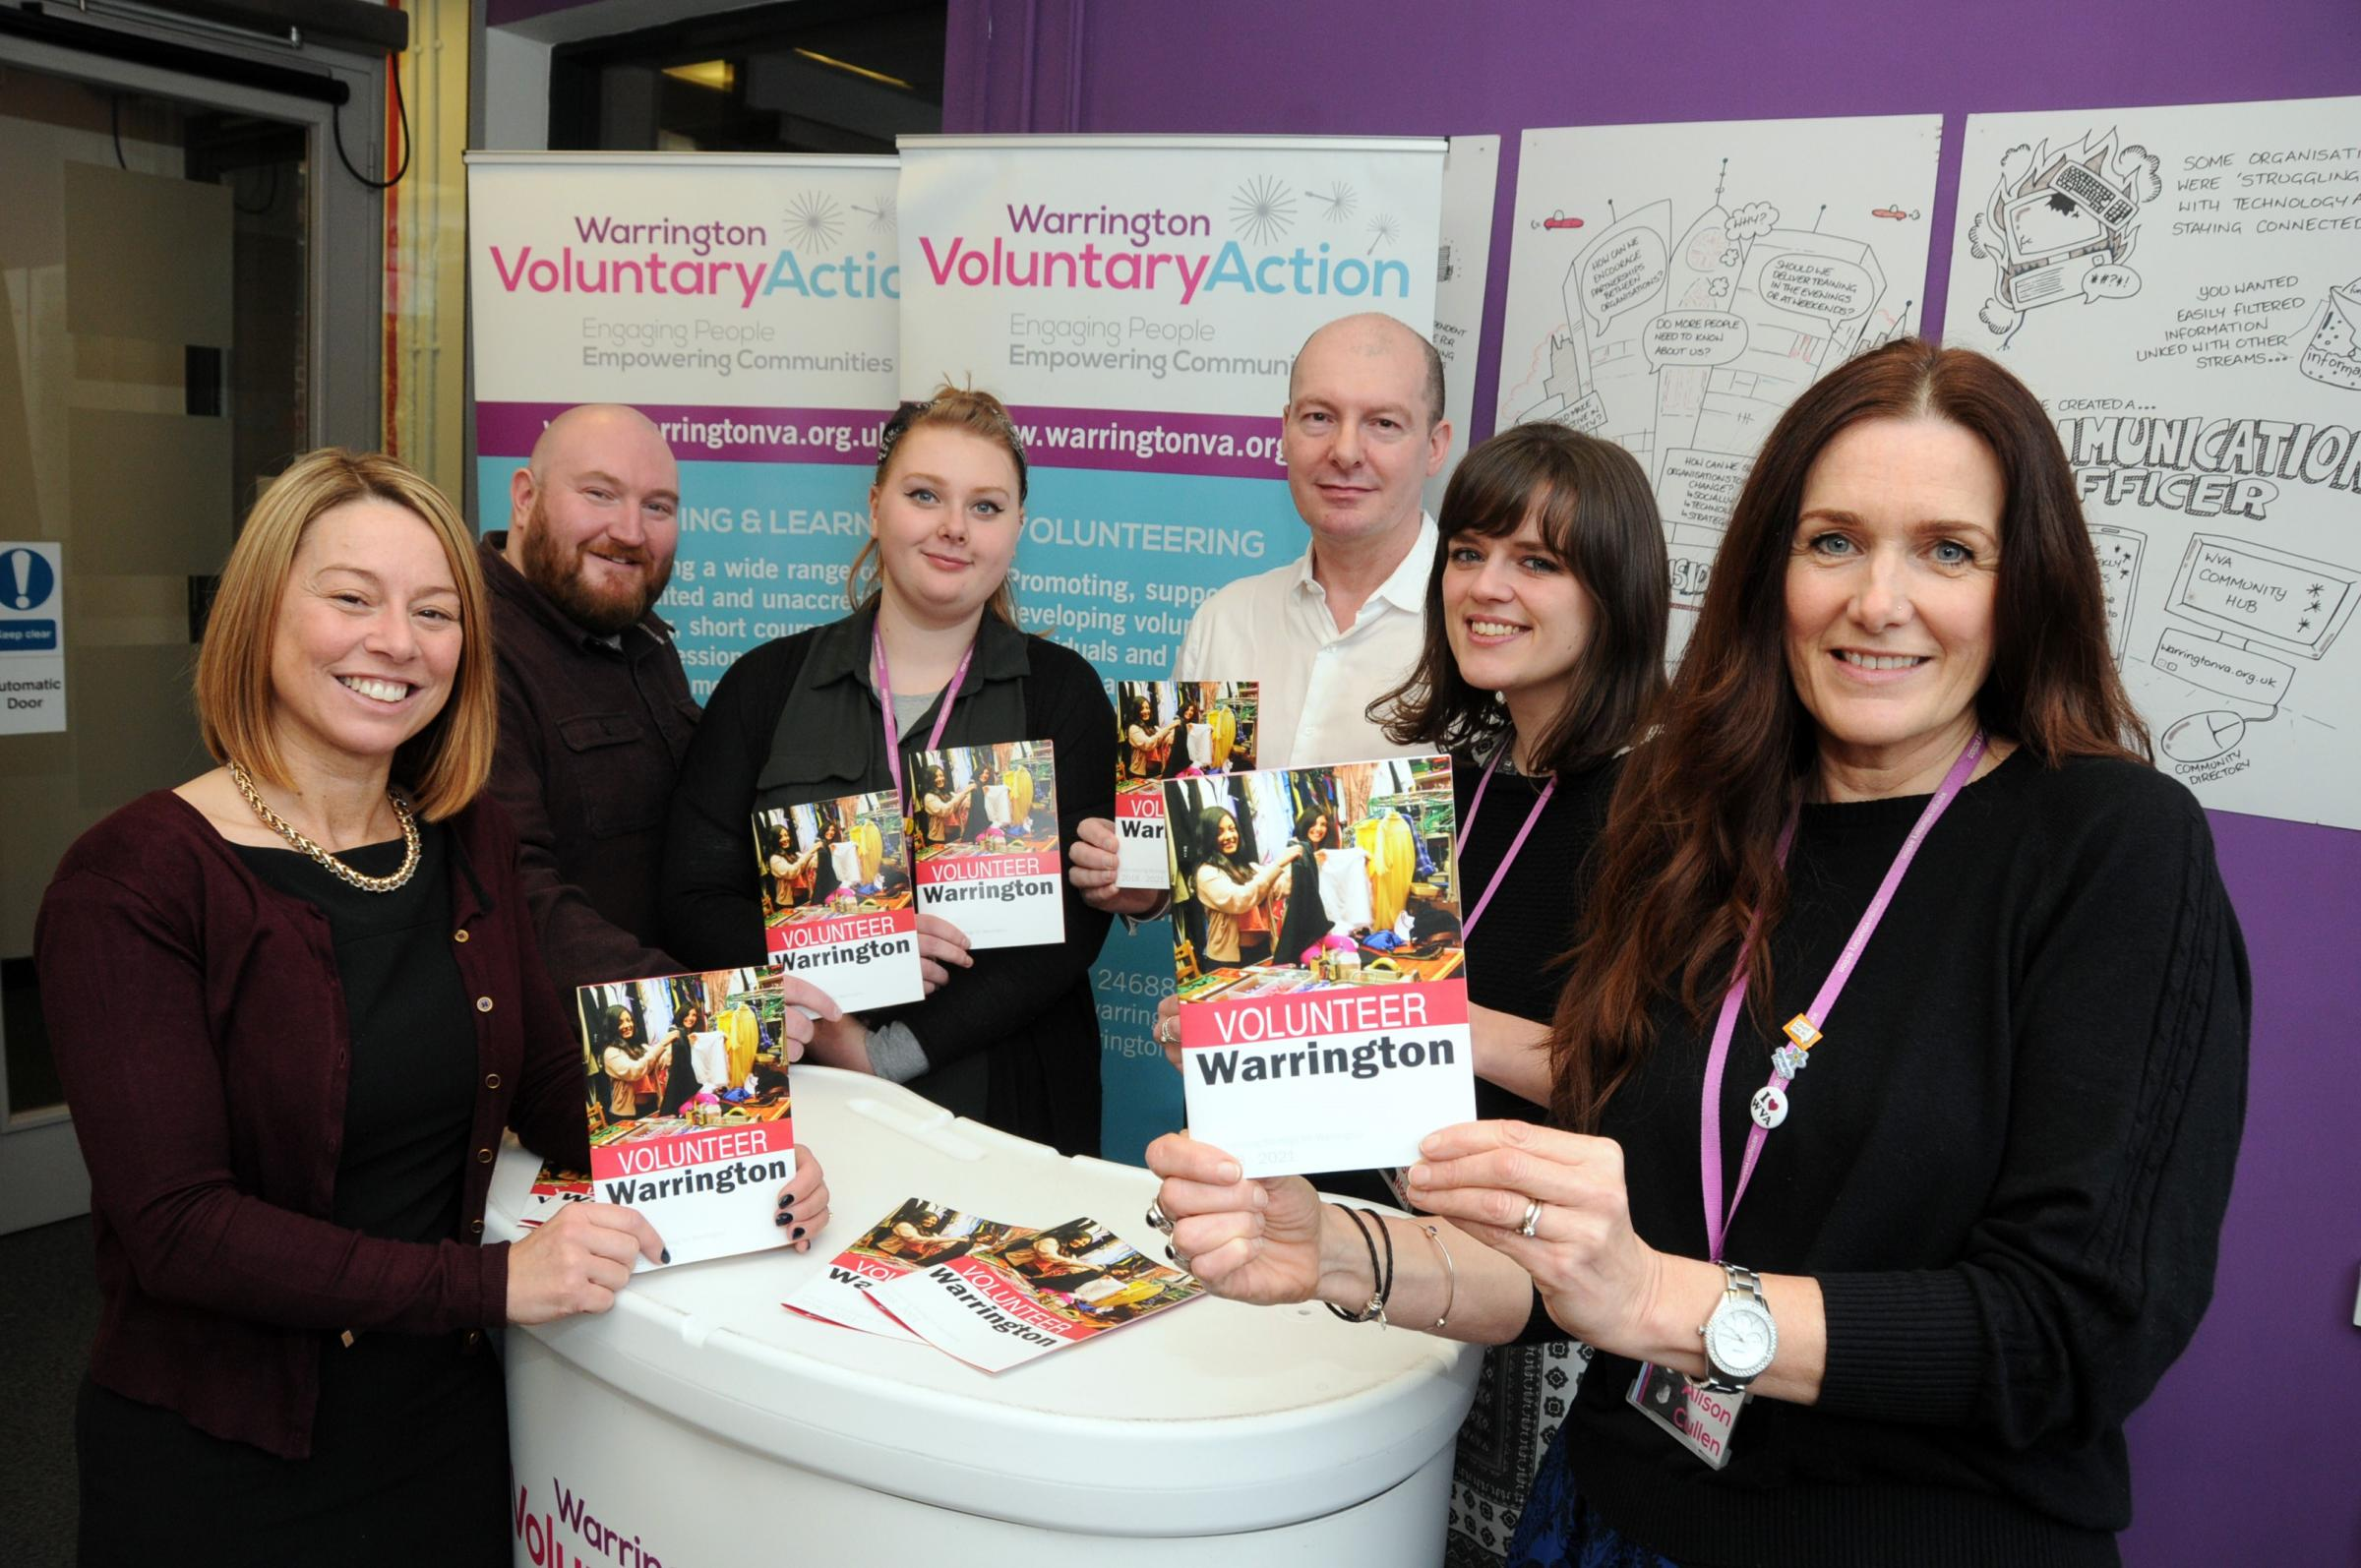 Make 2018 your time to take on some volunteering